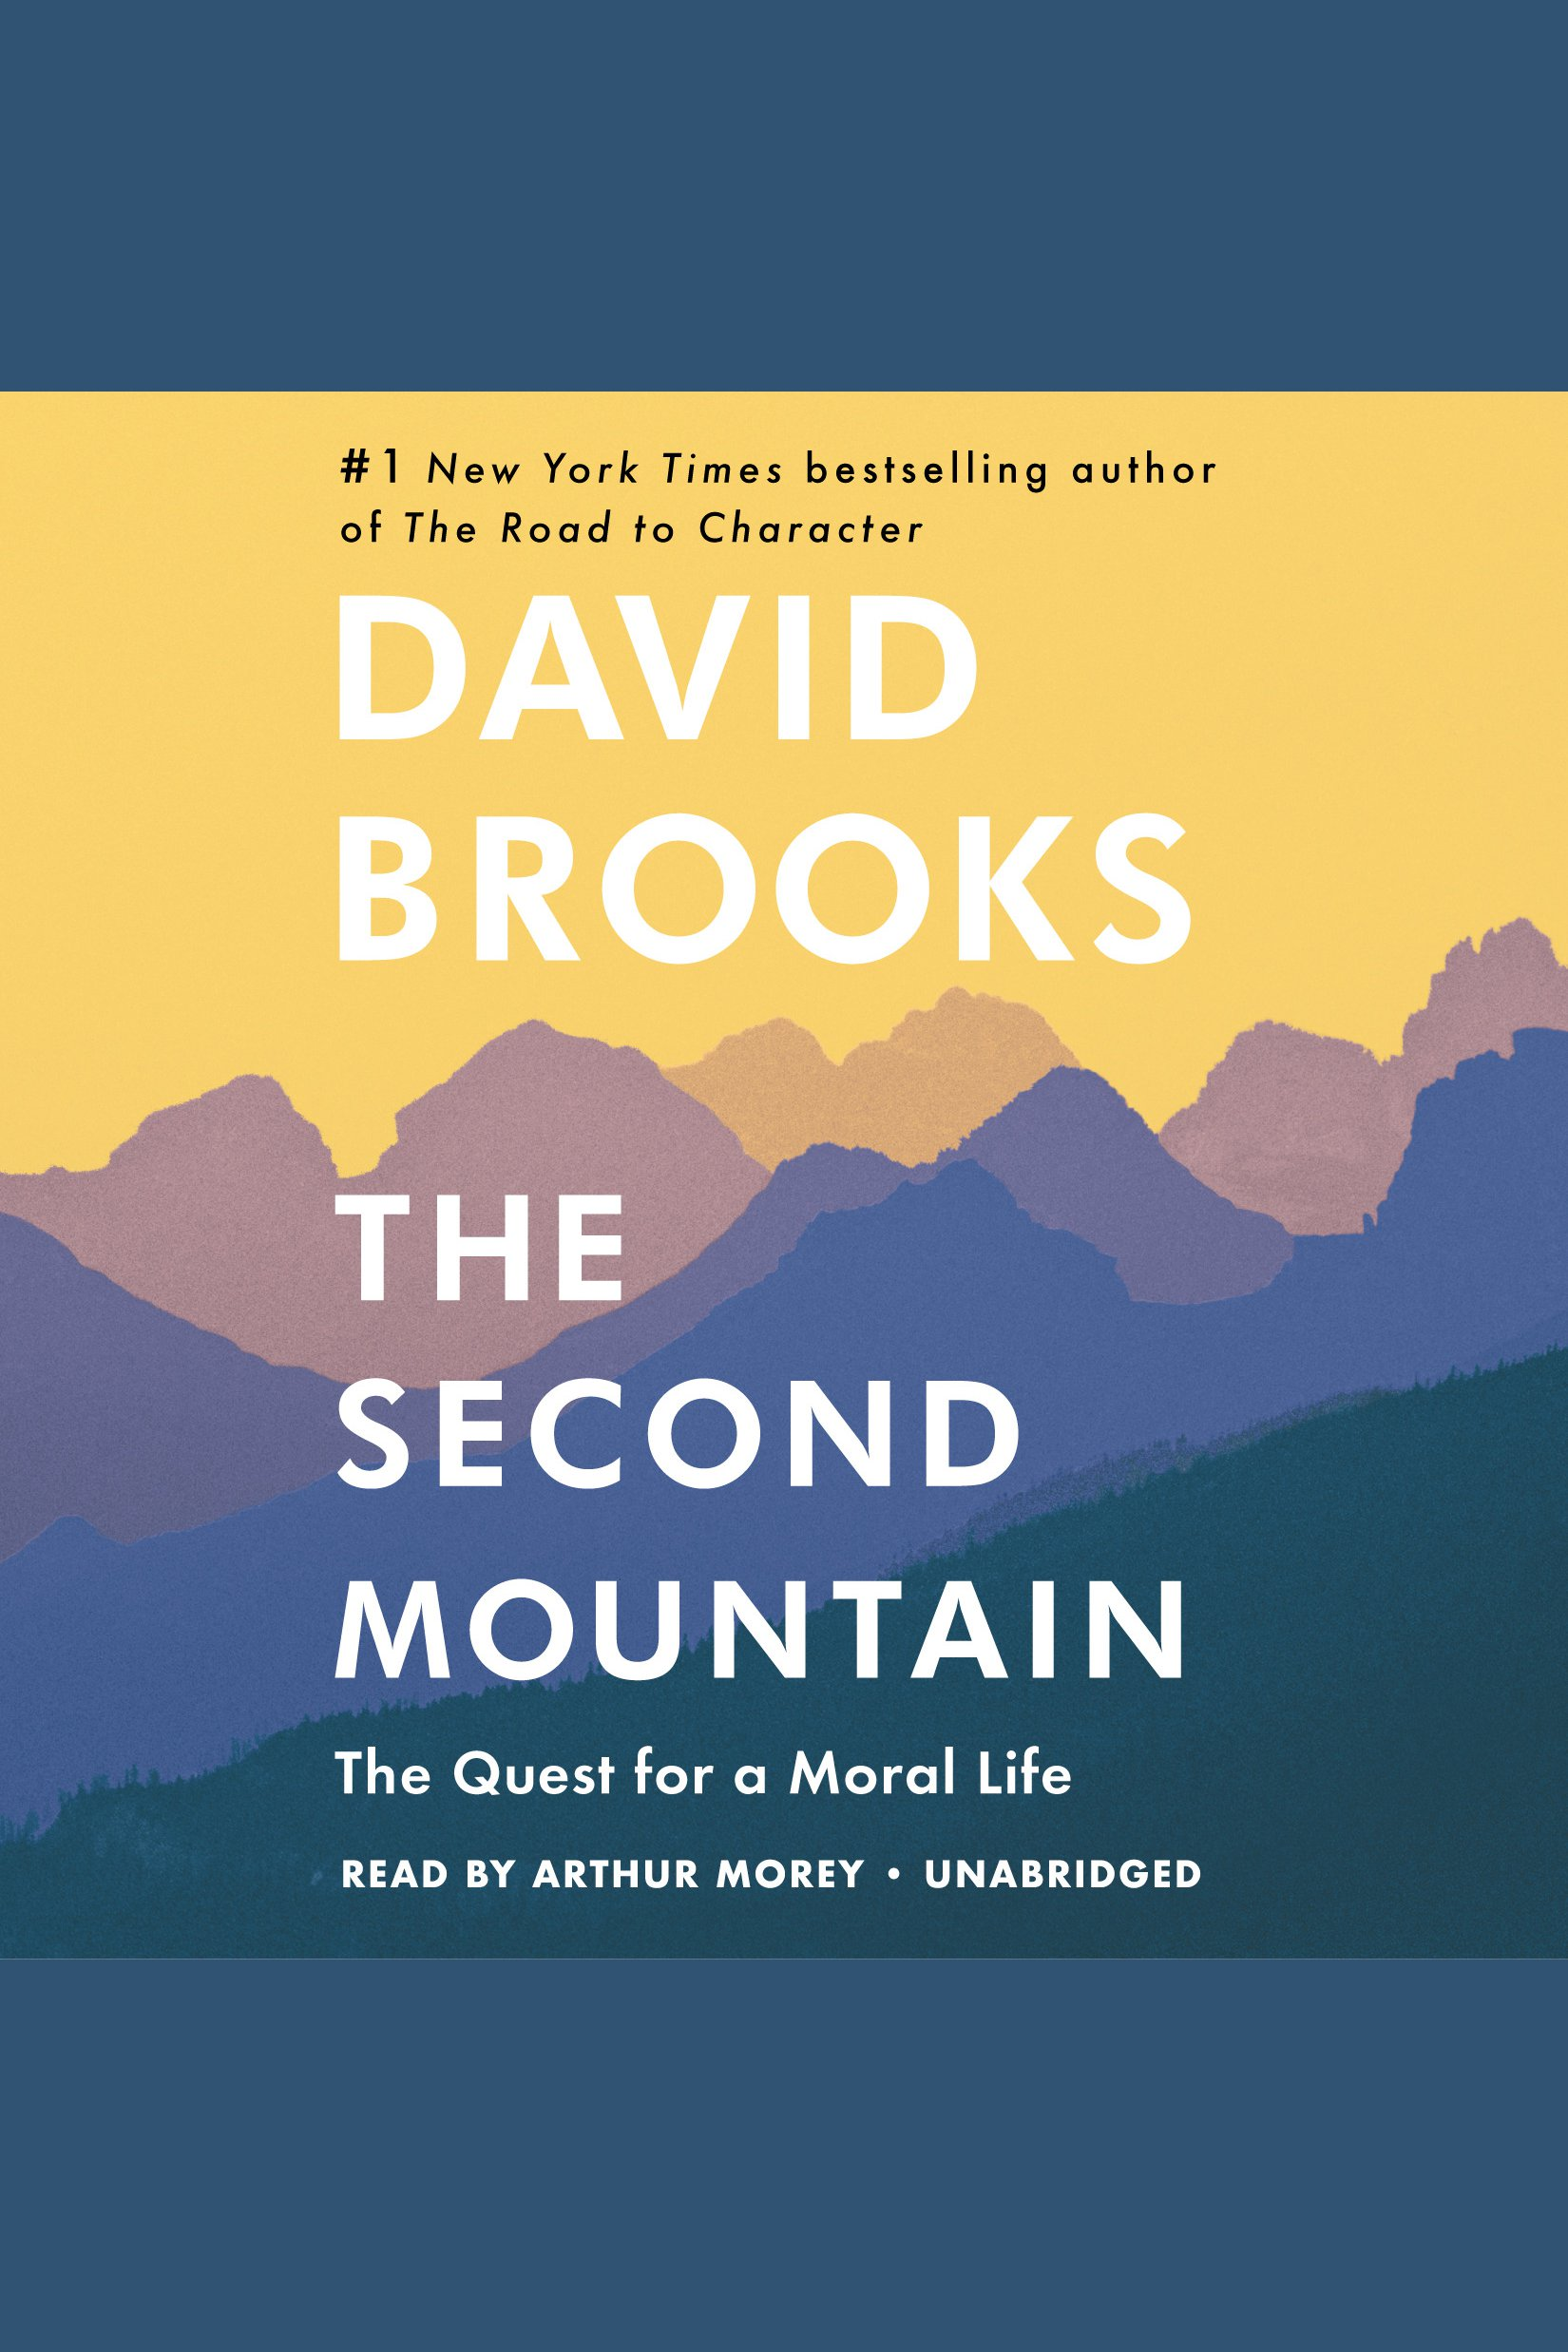 The second mountain the quest for a moral life cover image